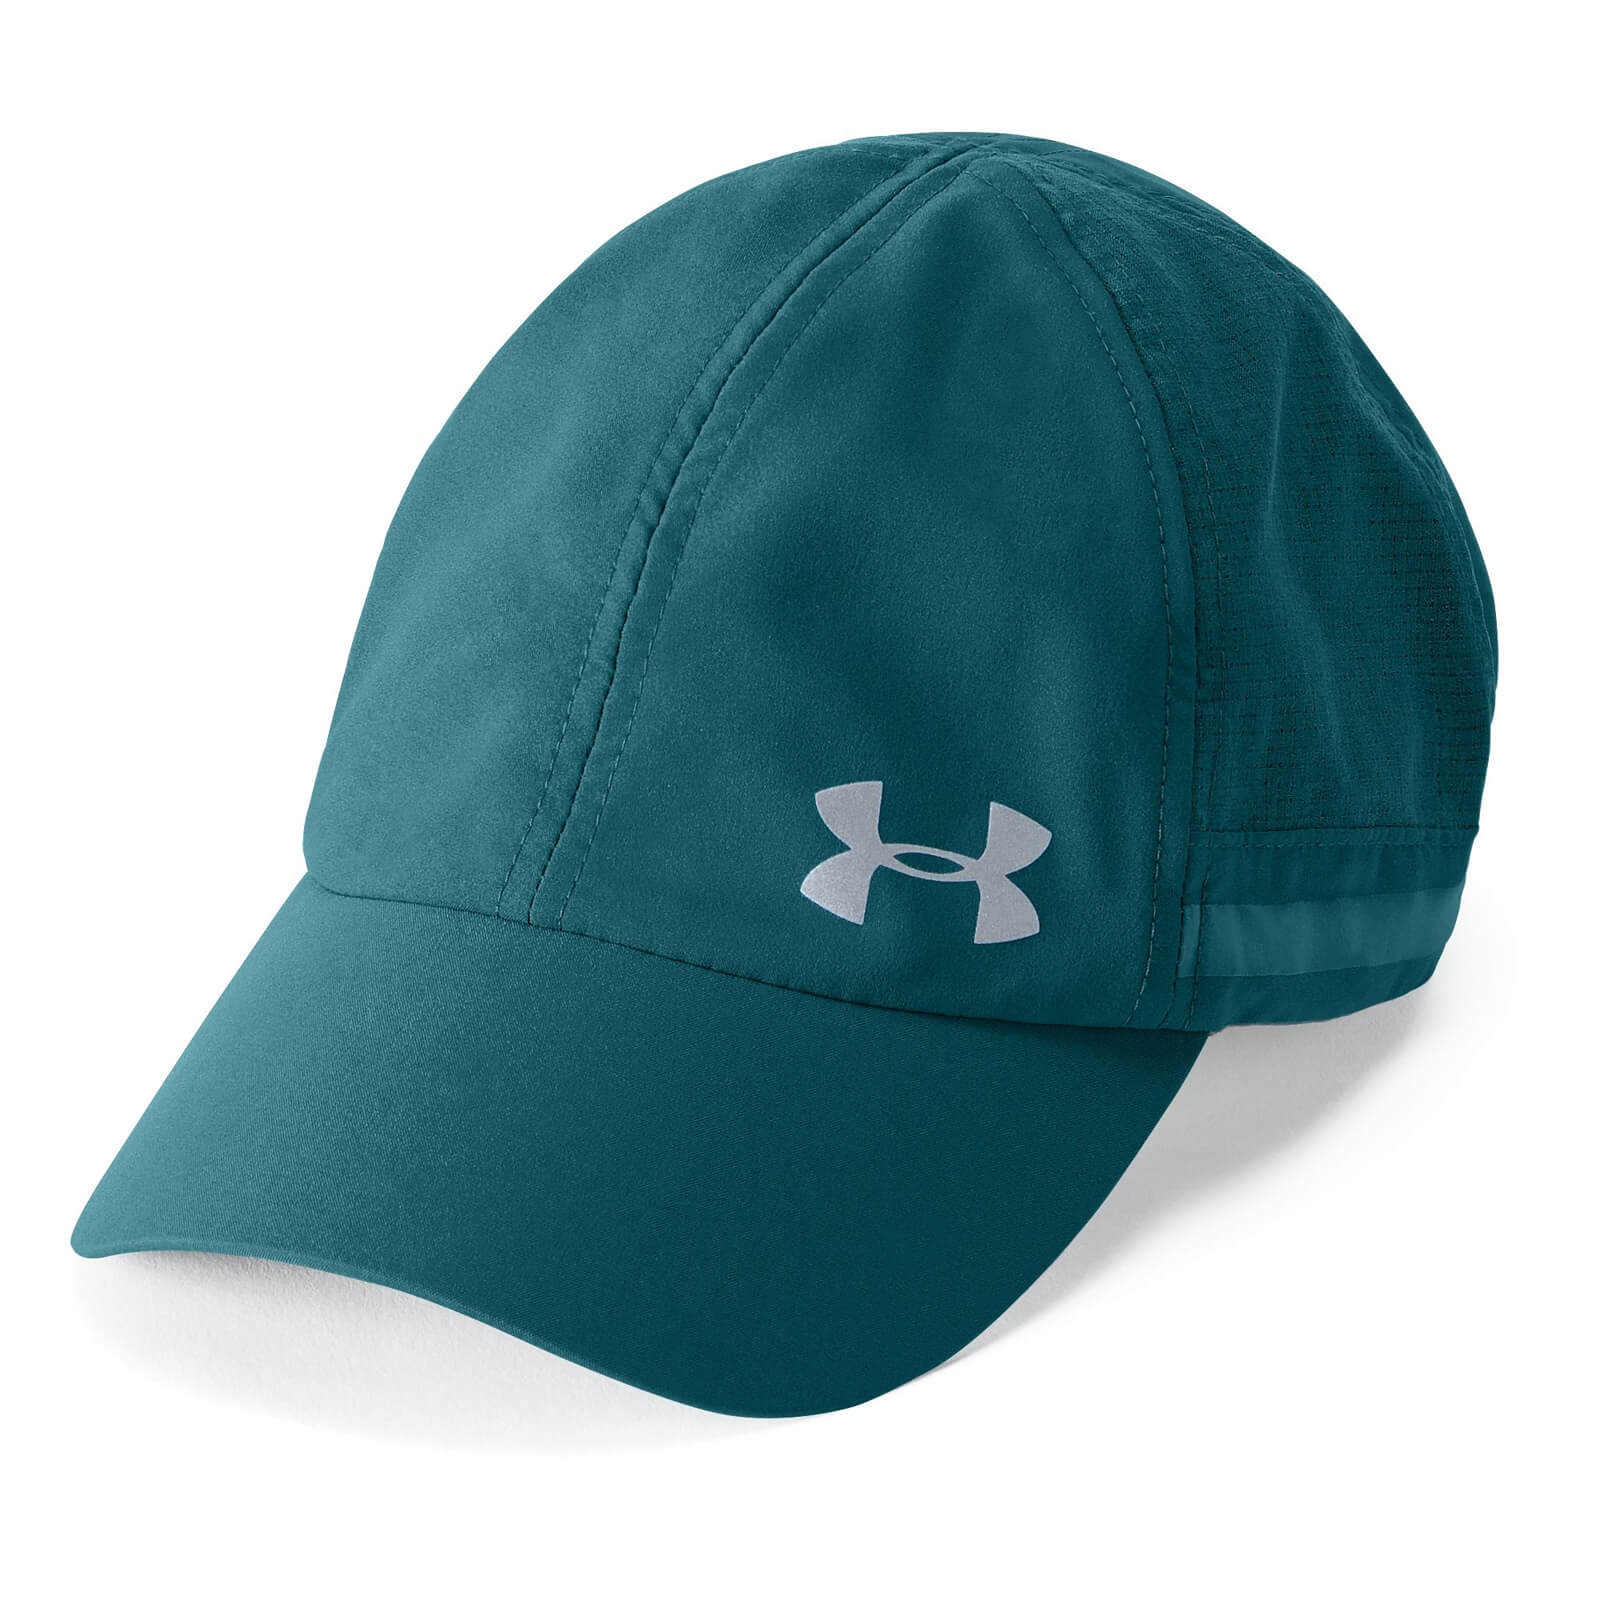 Under Armour Fly By Cap - Green